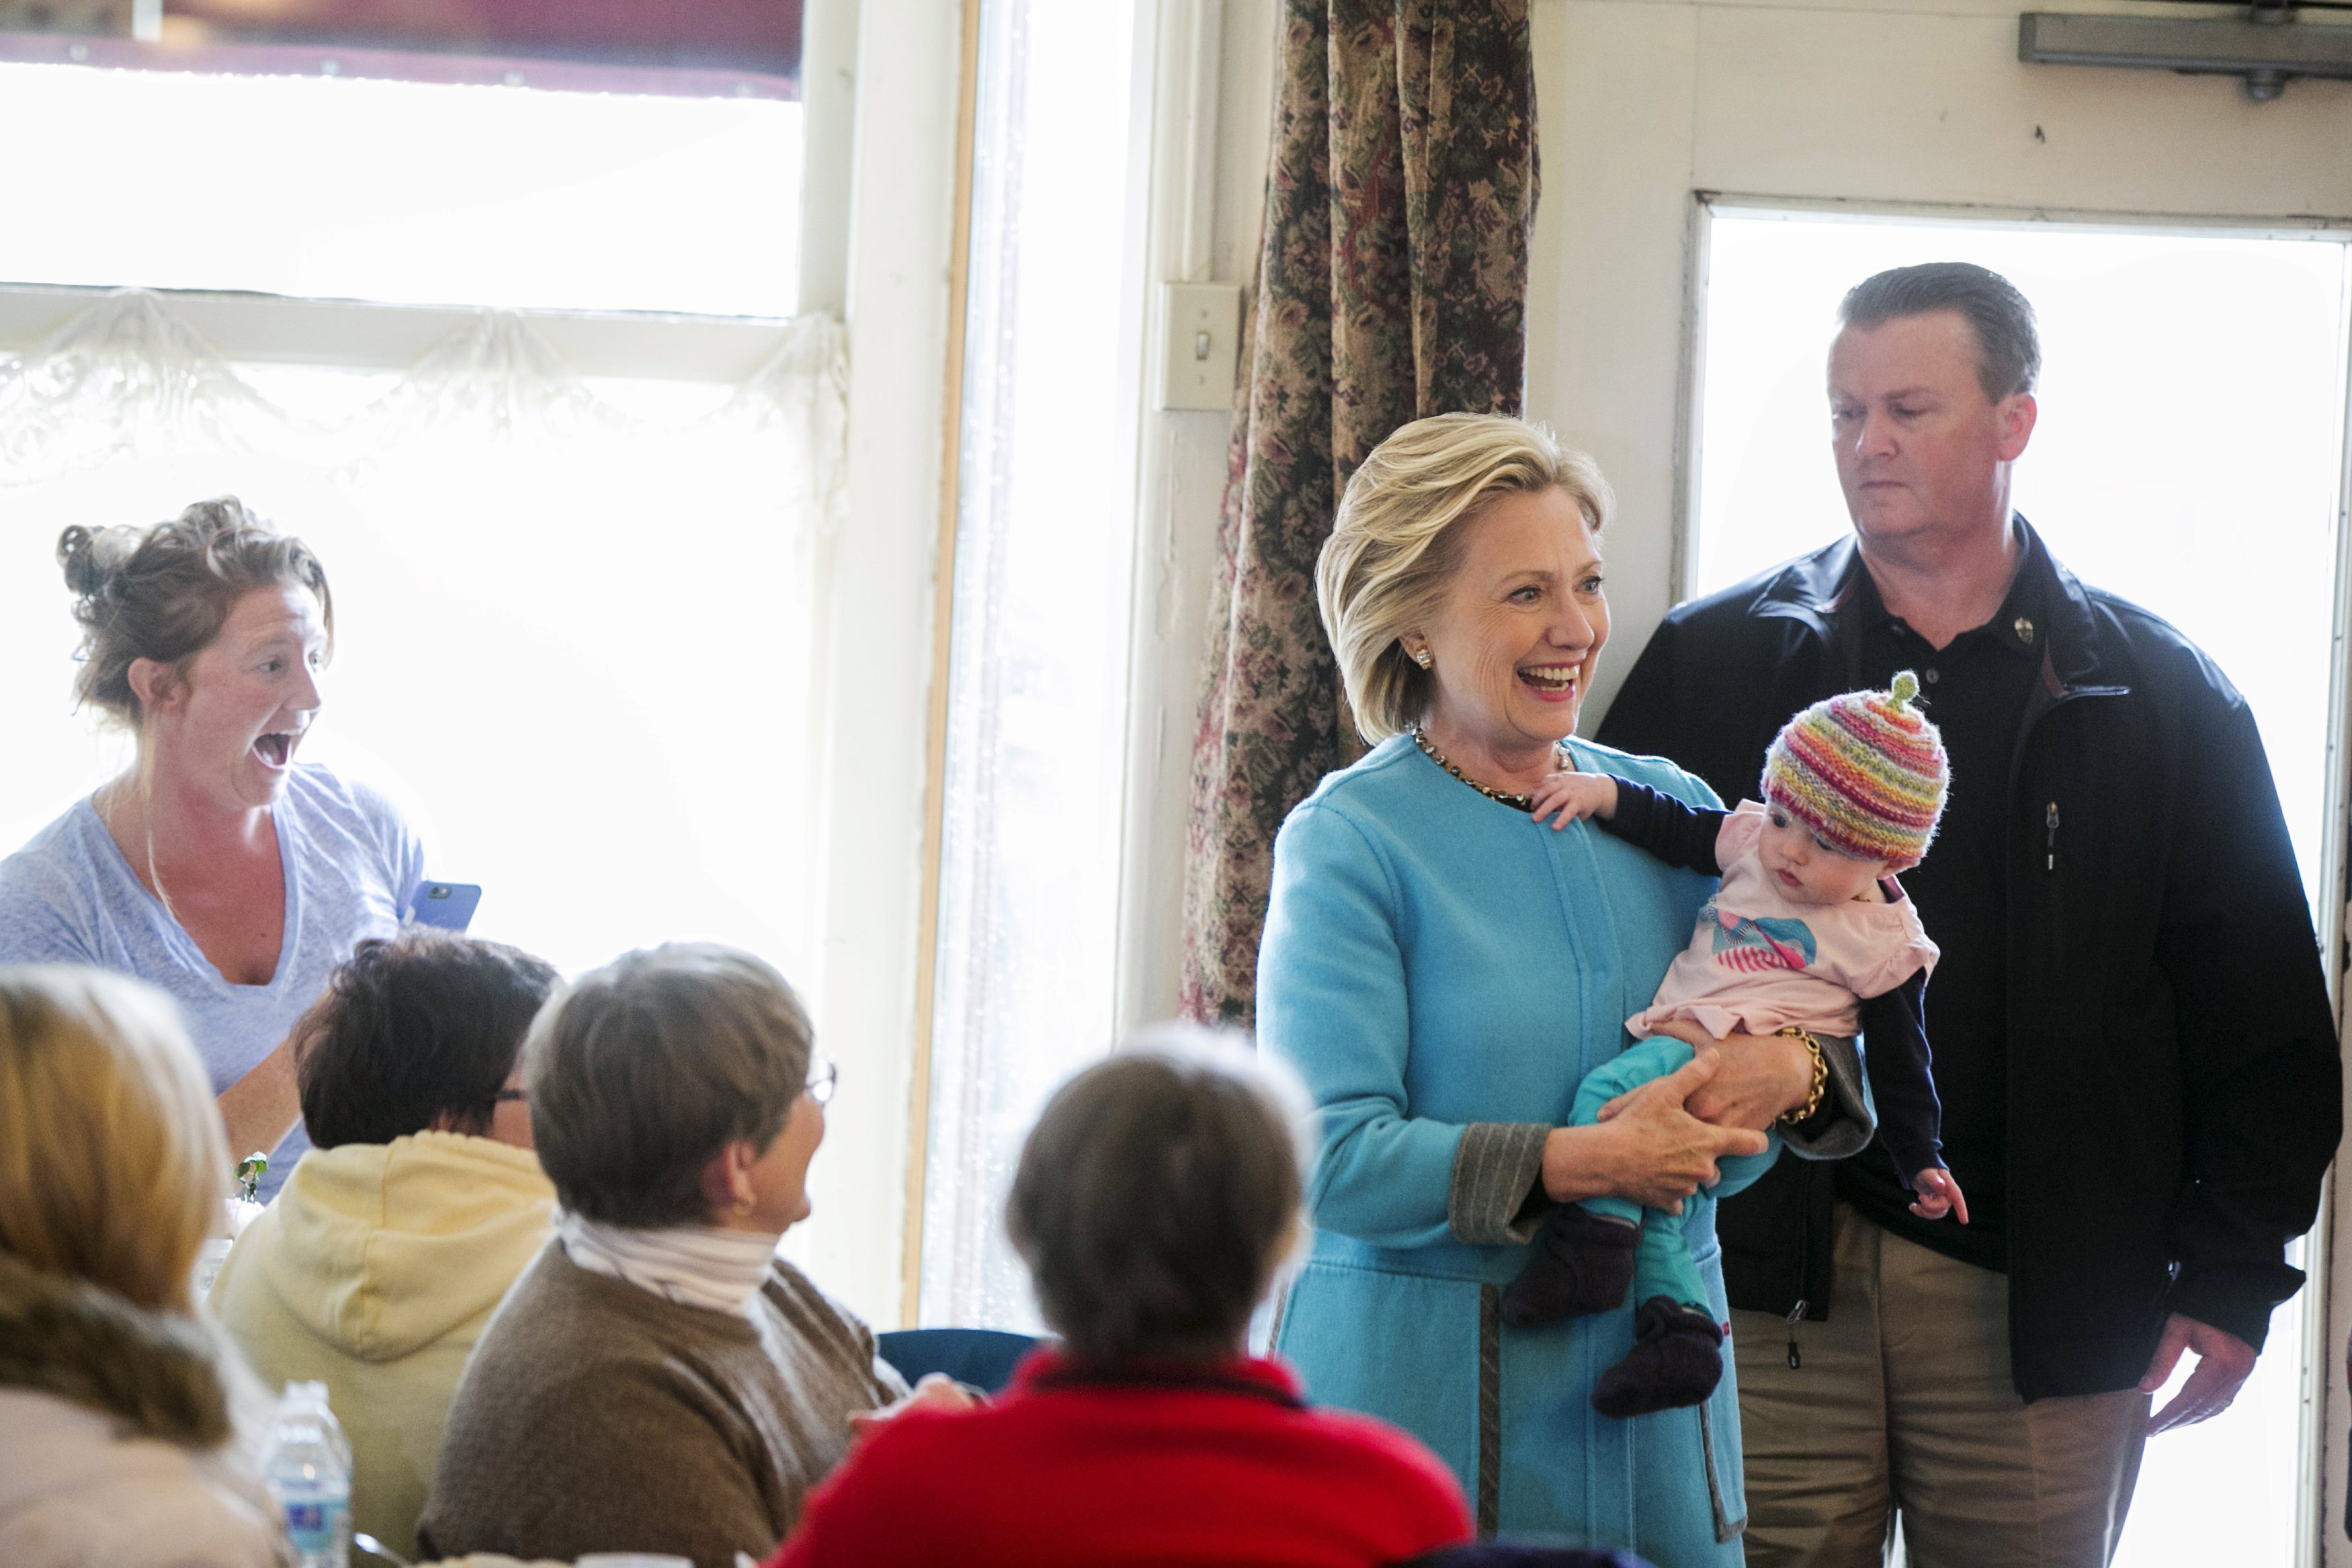 Keene, N.H. - April 20: Clinton's first good baby photo-op came early in New Hampshire in the town of Keene. Her campaign has made multiple references to her new status as a grandmother.